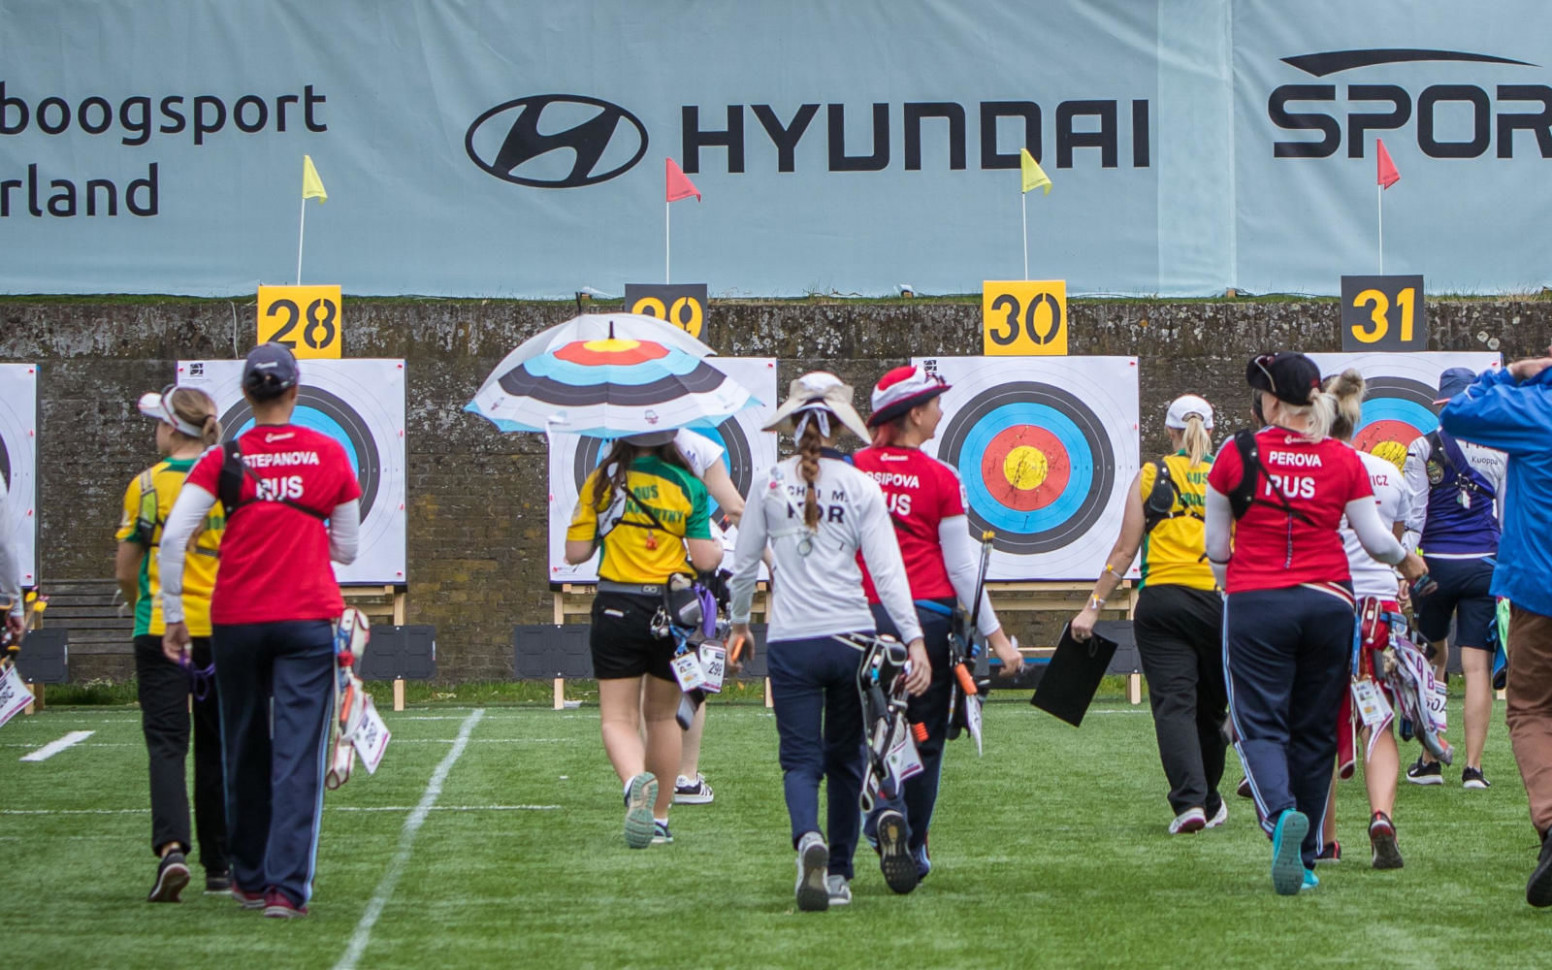 11 Hyundai World Archery Championships in The Netherlands ..